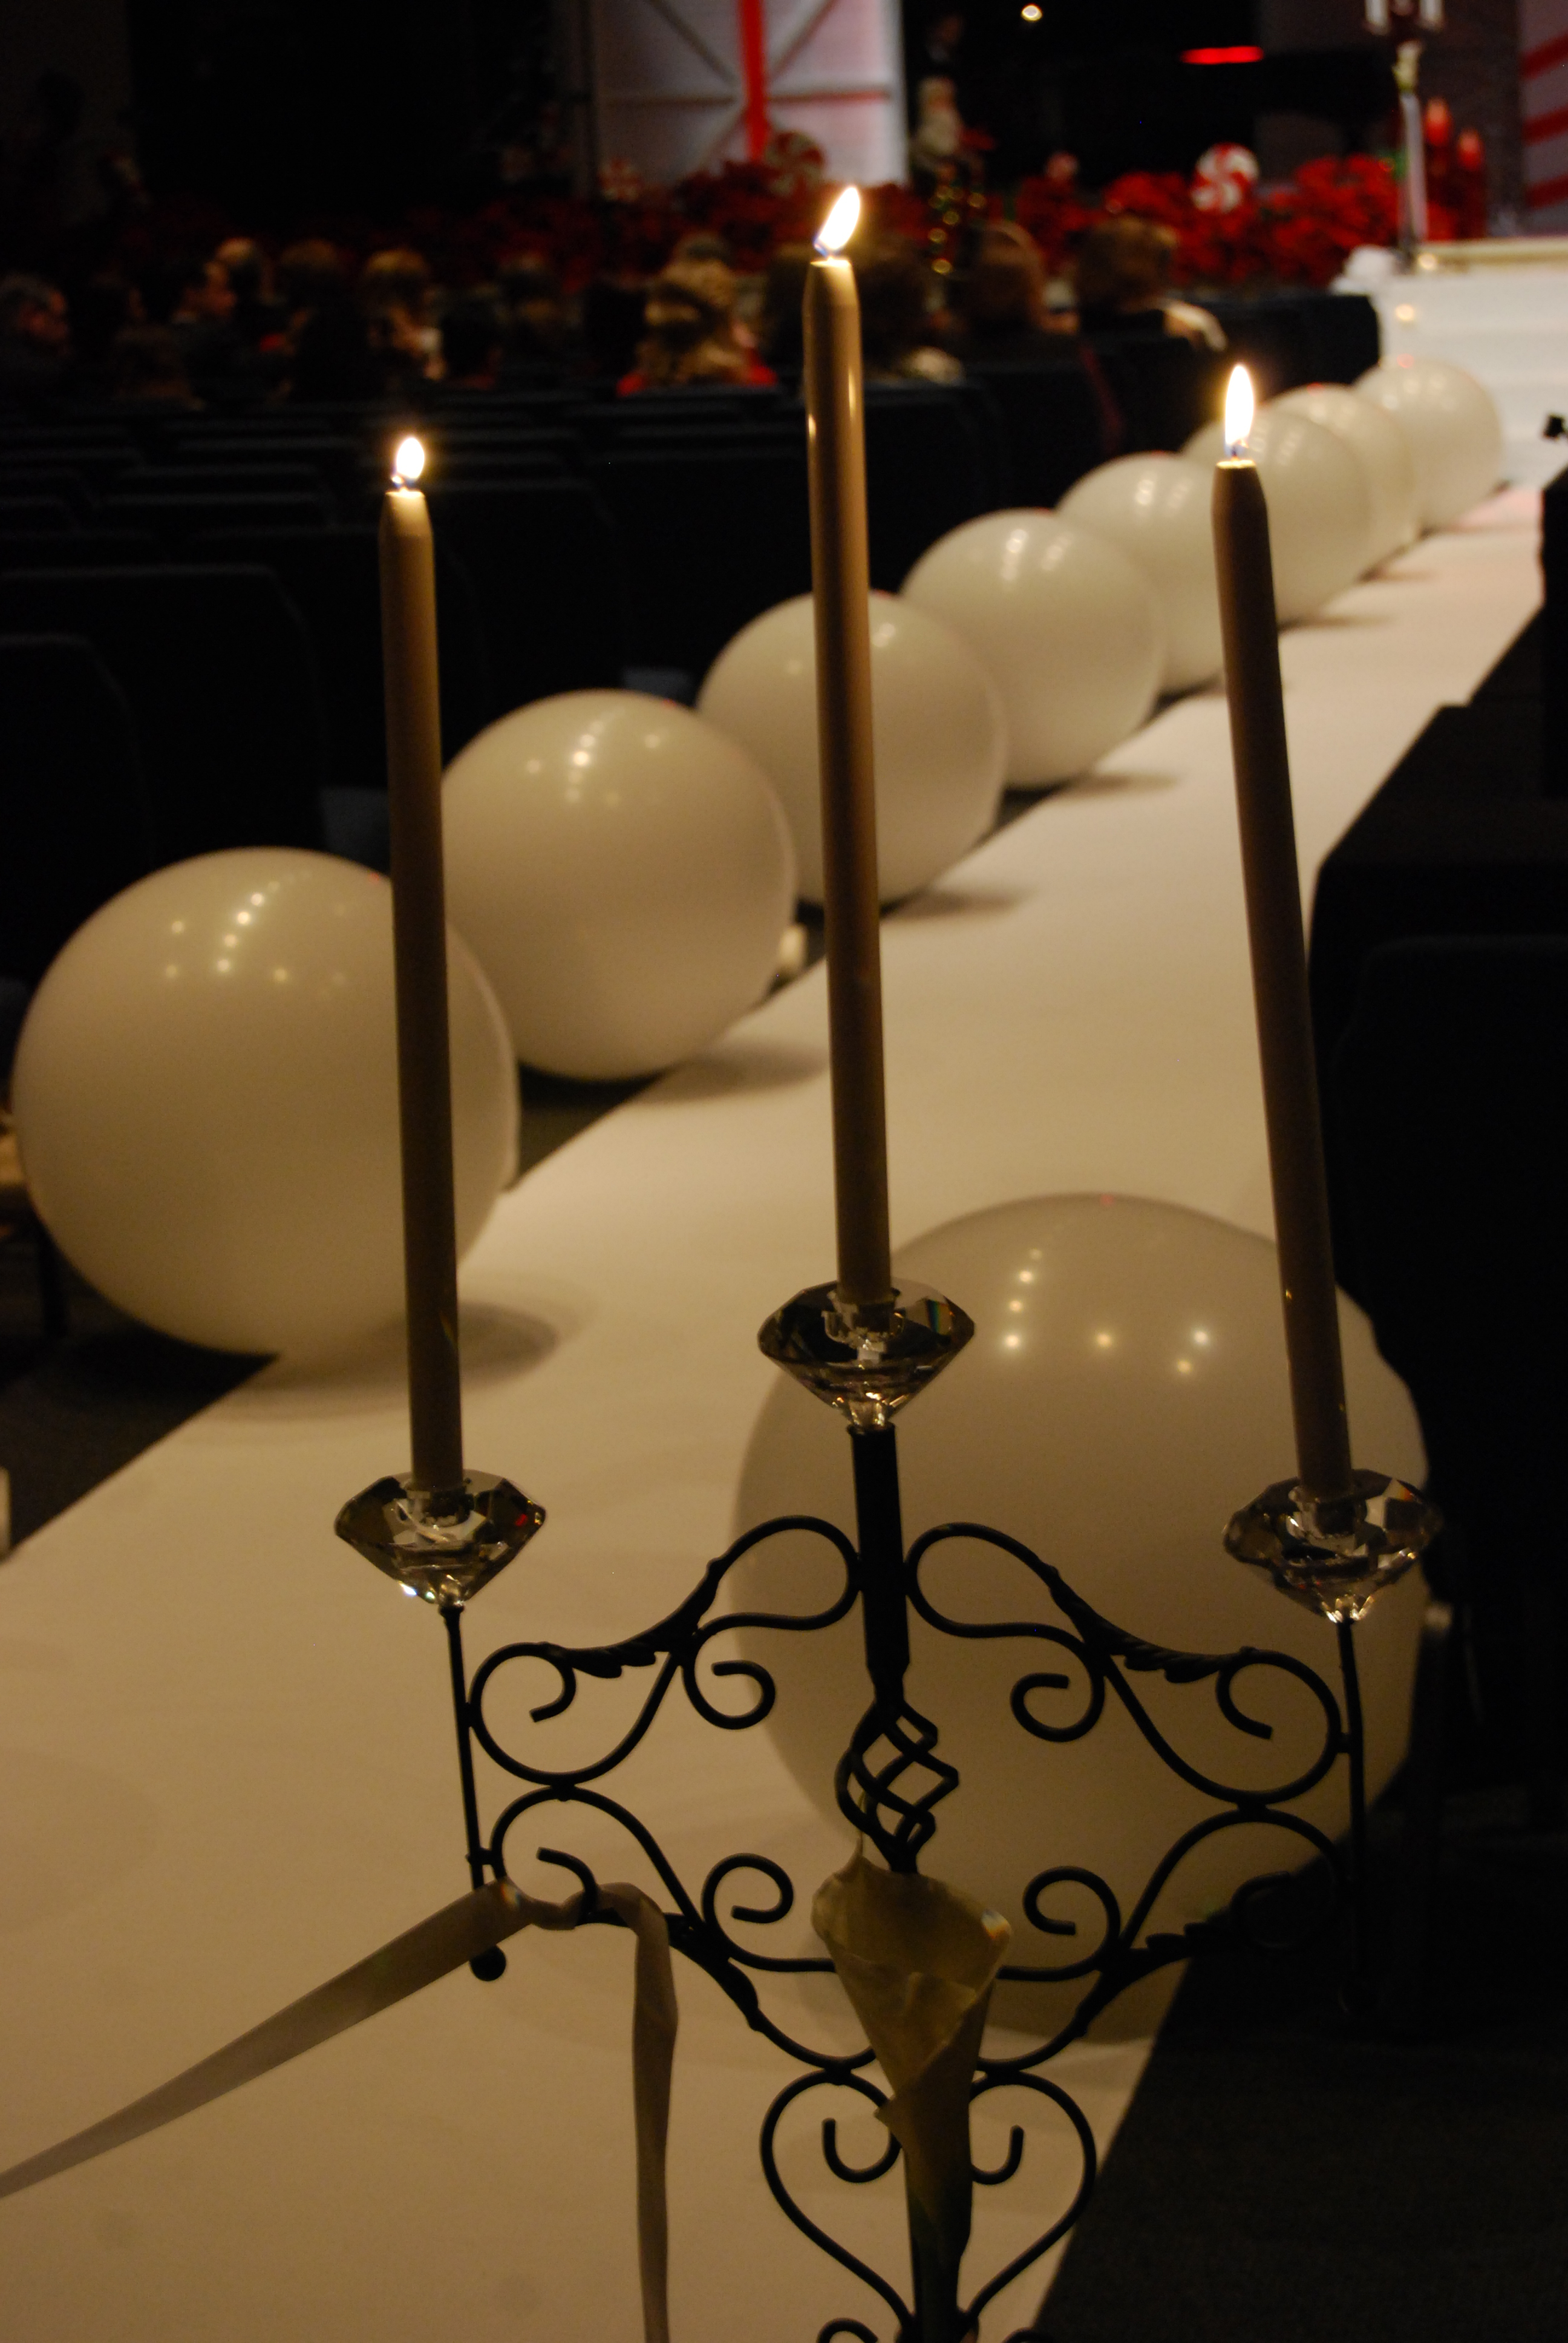 Ceremony, Flowers & Decor, Decor, white, black, Candles, Crystal, Aisle, Mechanical, Balloons, Candleabra, Tapers